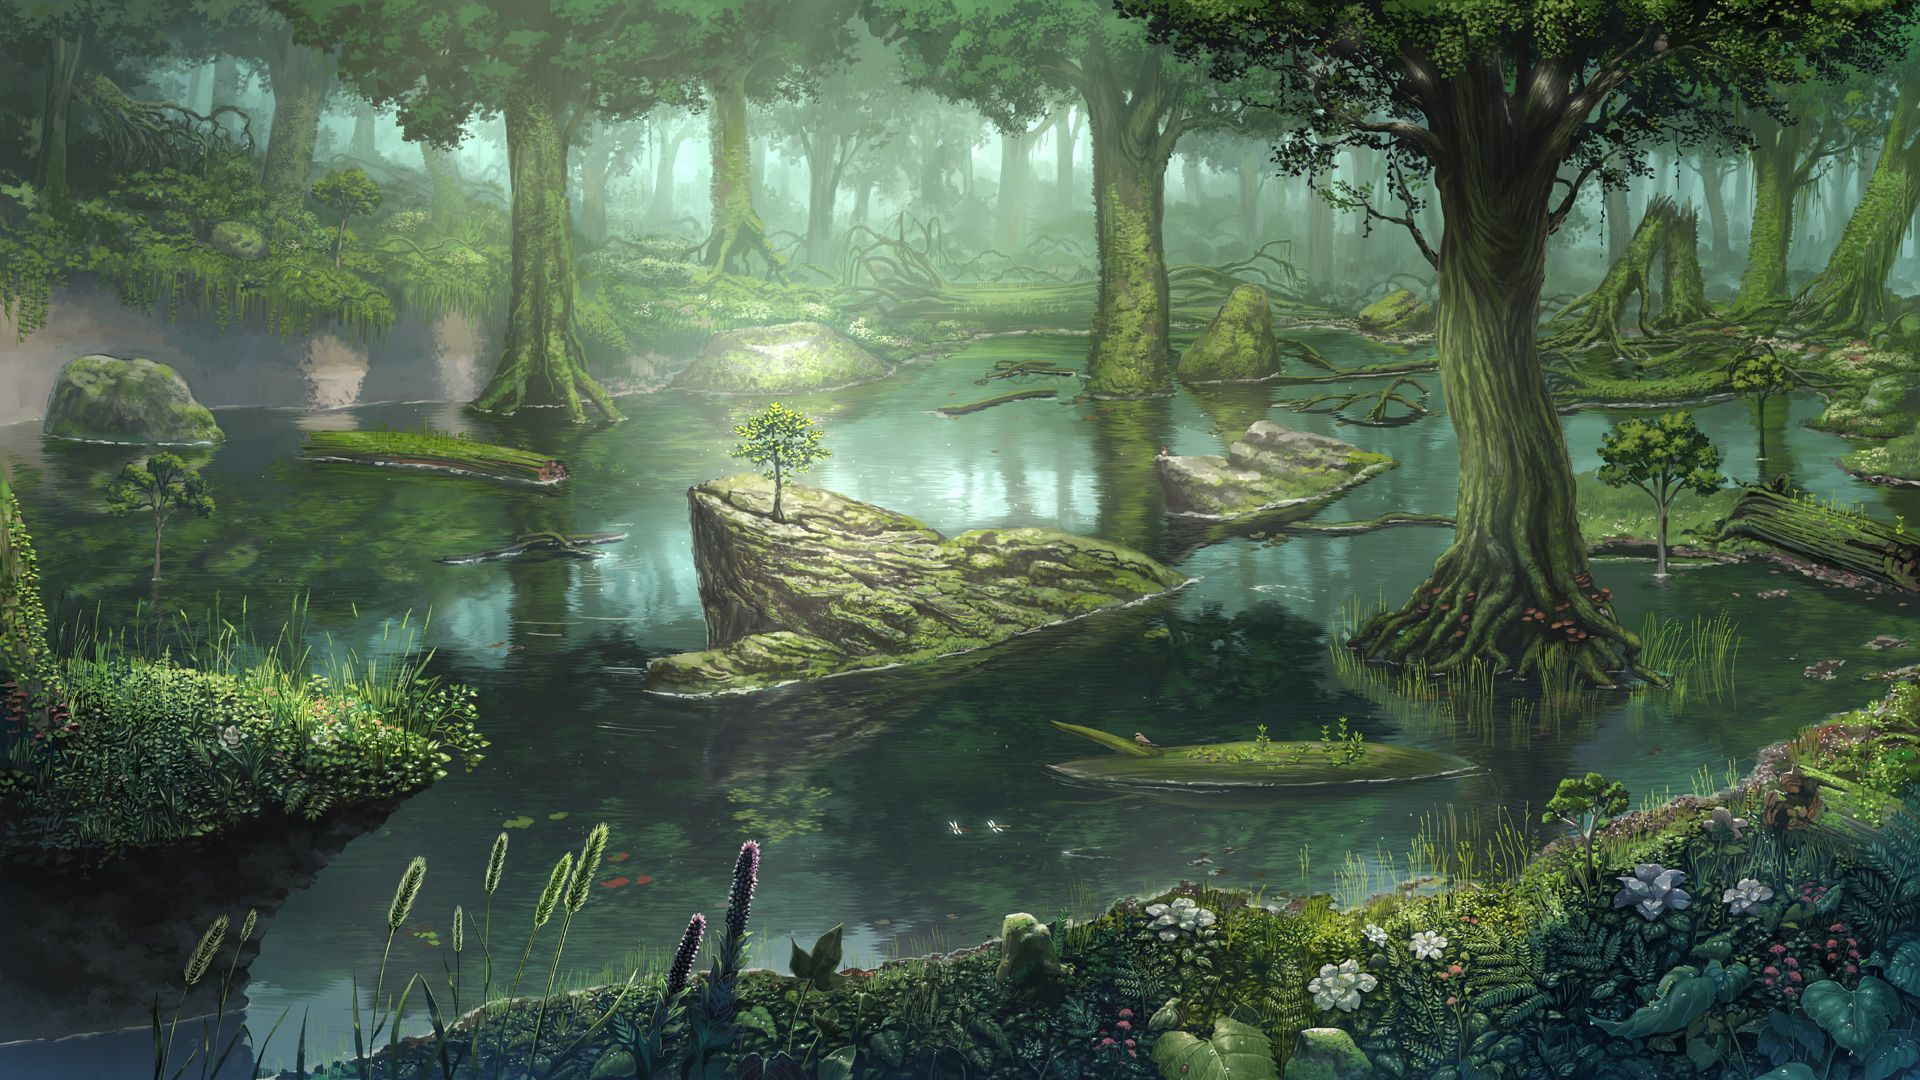 fantasy swamp | Forest swamp wallpaper | FANTASY SWAMP ...